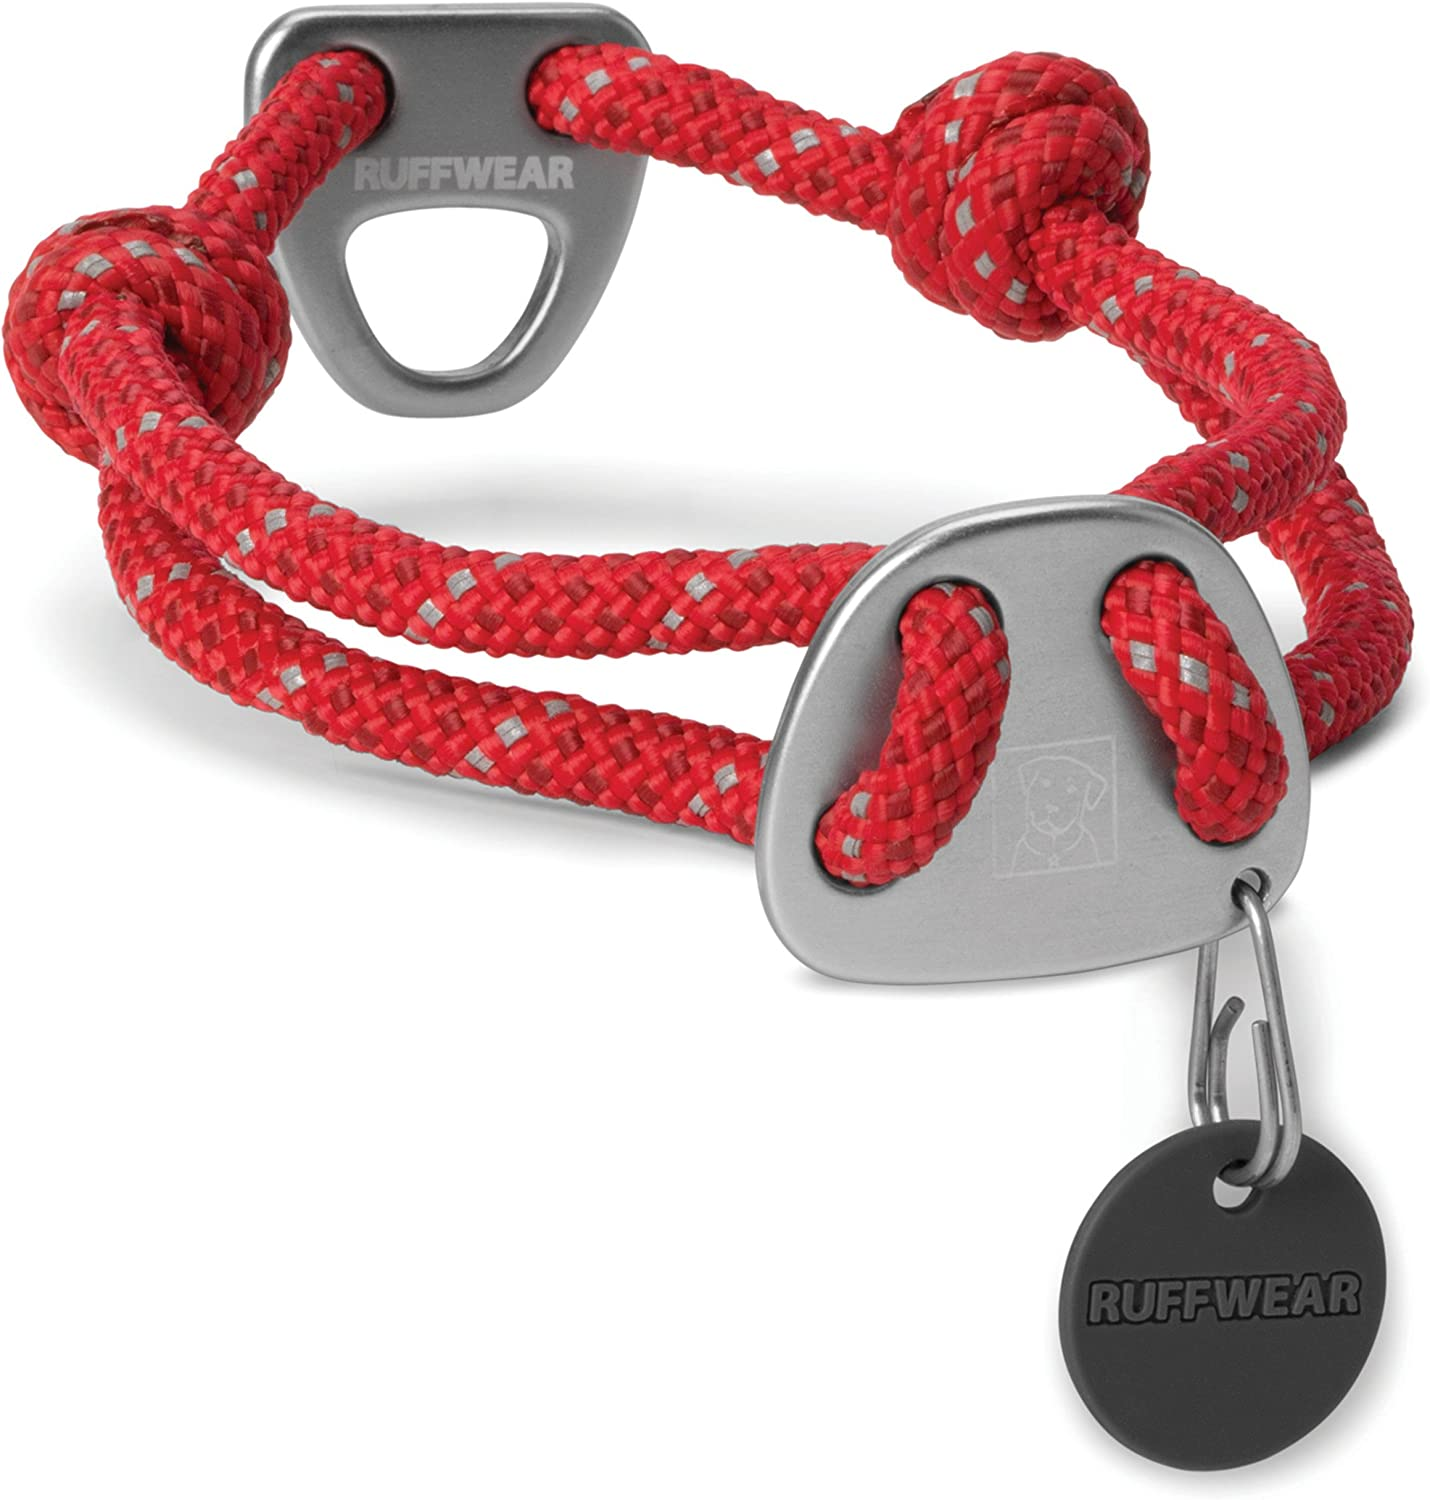 Ruffwear KnotACollar, Large, Red Currant